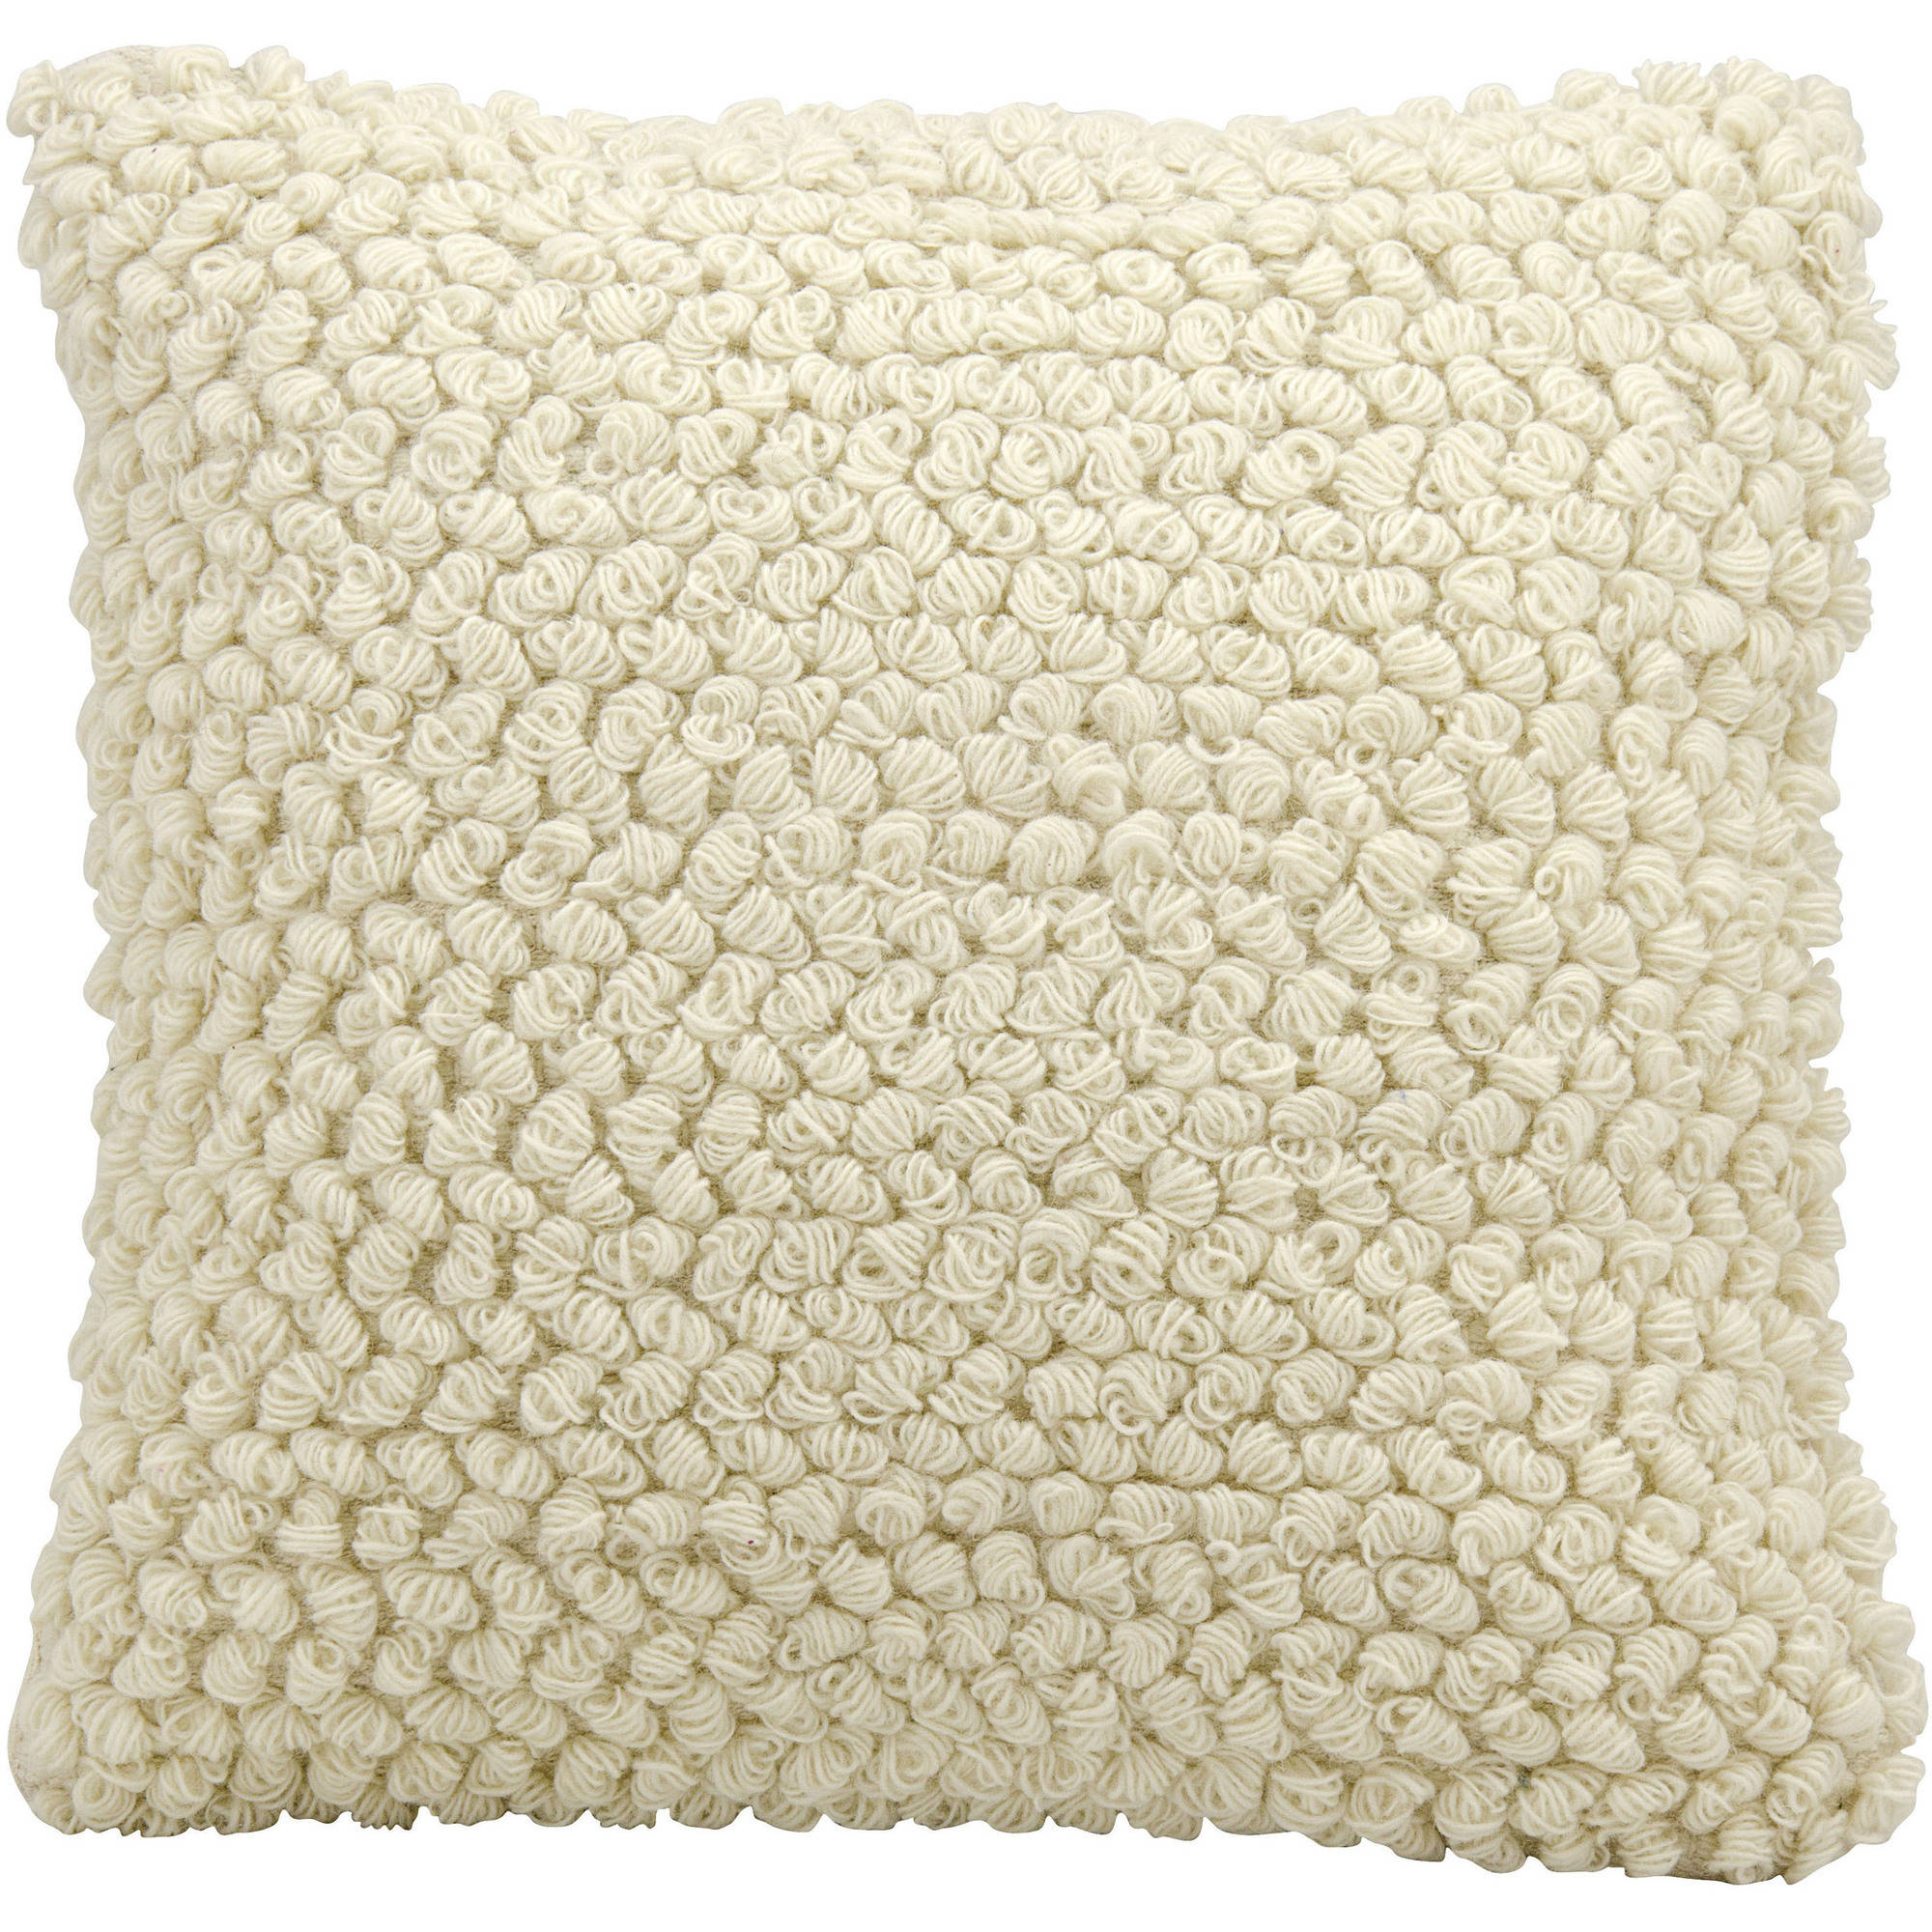 "Nourison Life Styles Thin Groop Loops Decorative Throw Pillow, 20"" x 20"", Ivory"